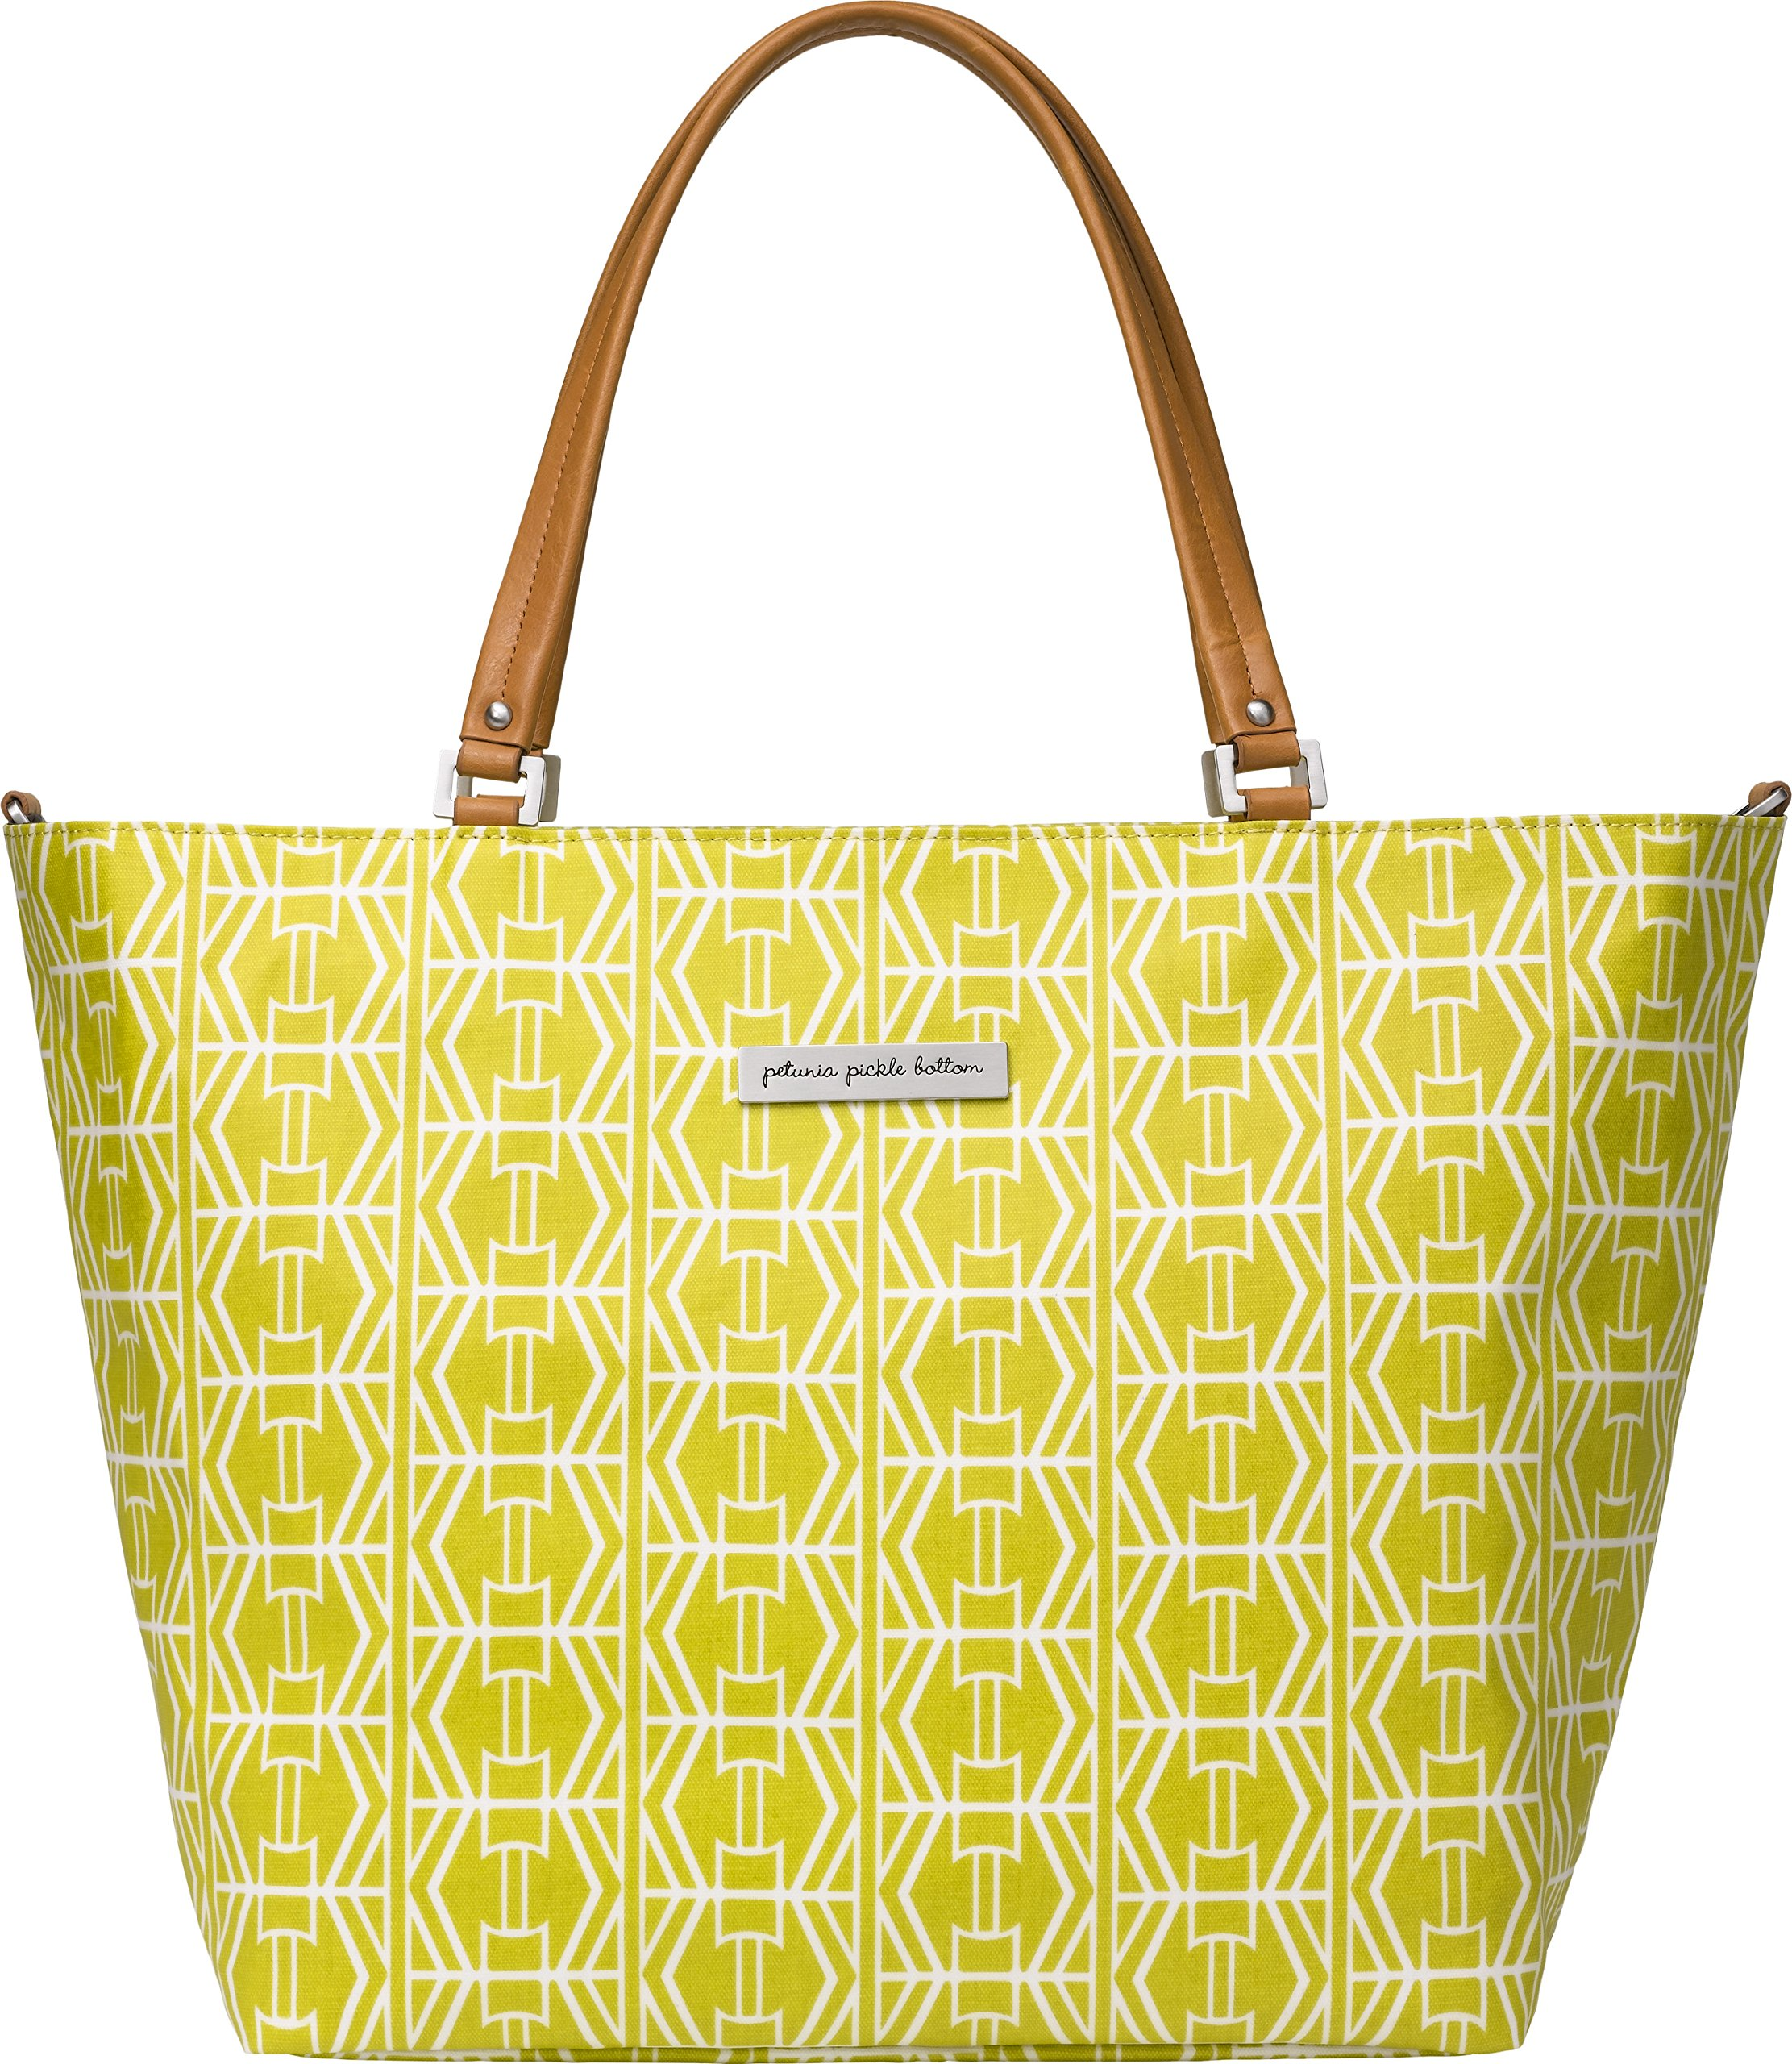 Petunia Pickle Bottom Altogether Tote Diaper Bag in Electric Citrus, Yellow by Petunia Pickle Bottom